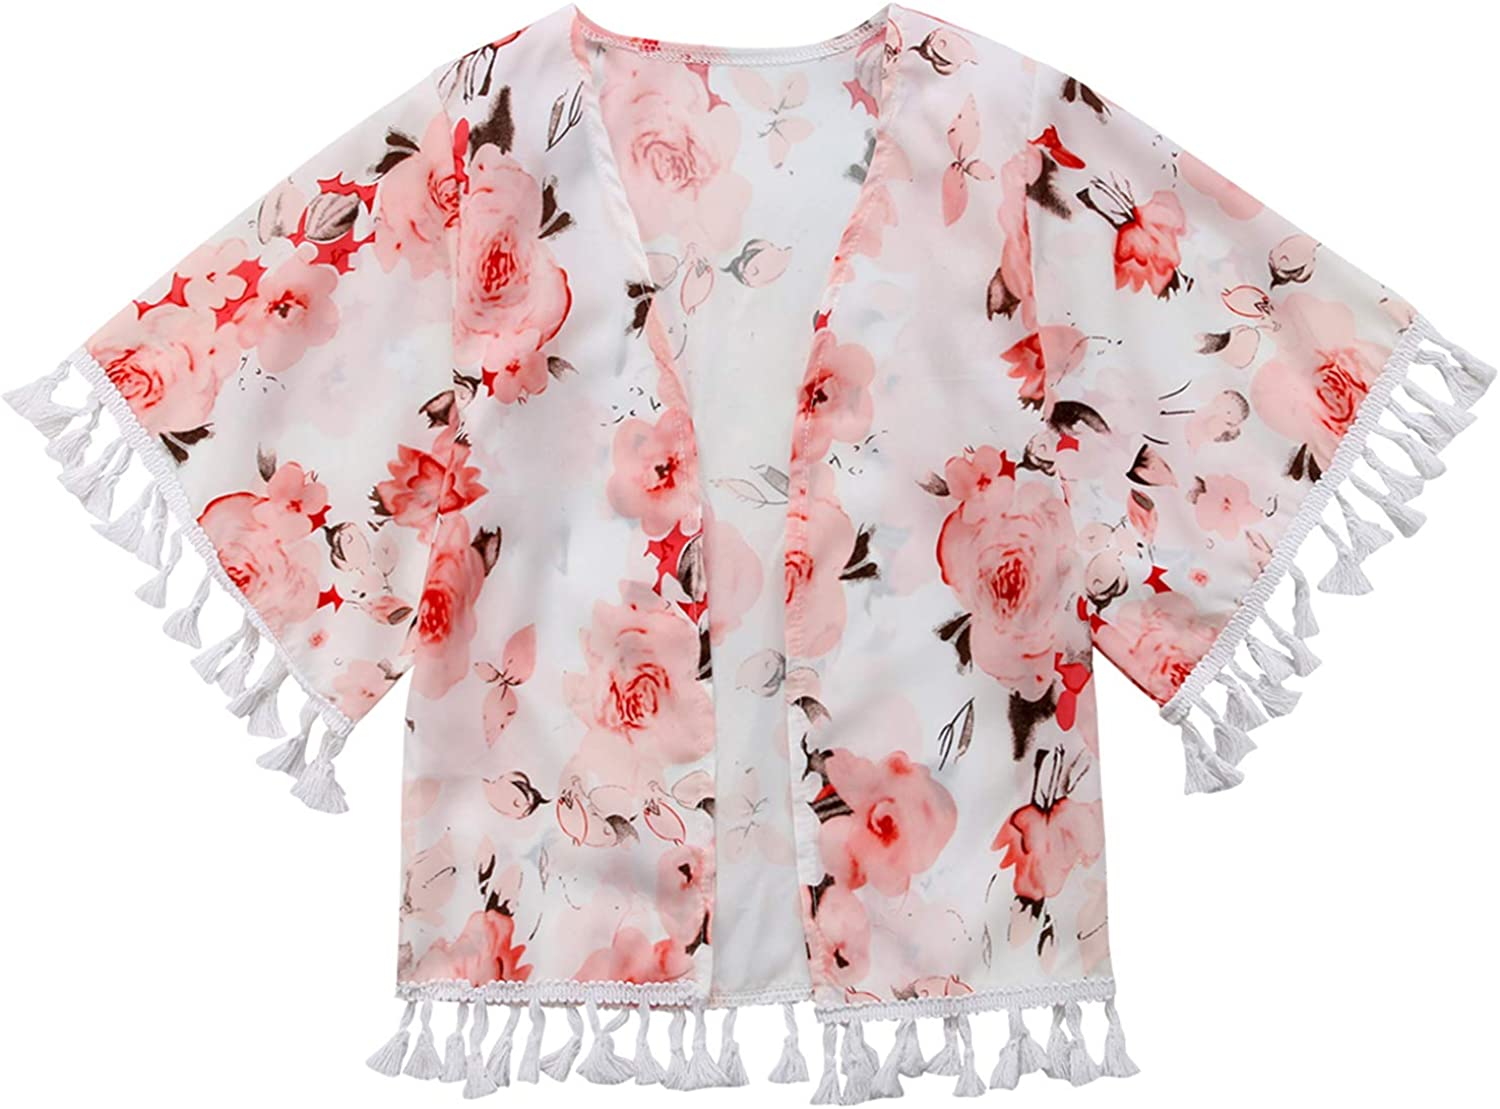 Baby Girl Floral Print Jacket Tassel Chiffon Kimono Cardigan Cover up Blouse Summer Coat Clothes